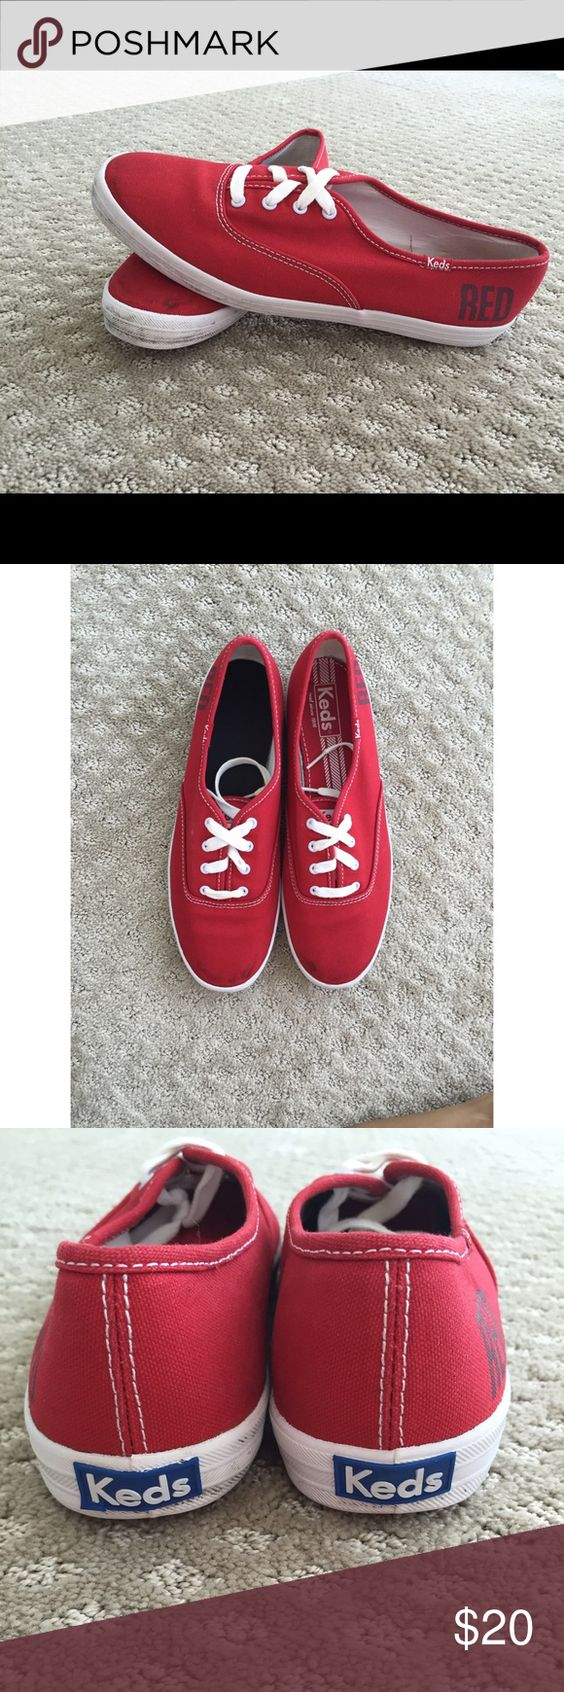 RED Keds with Taylor Swift Taylor Swift collaboration with Keds. RED Keds only worn a few times. Minor scuffs. Keds Shoes Sneakers